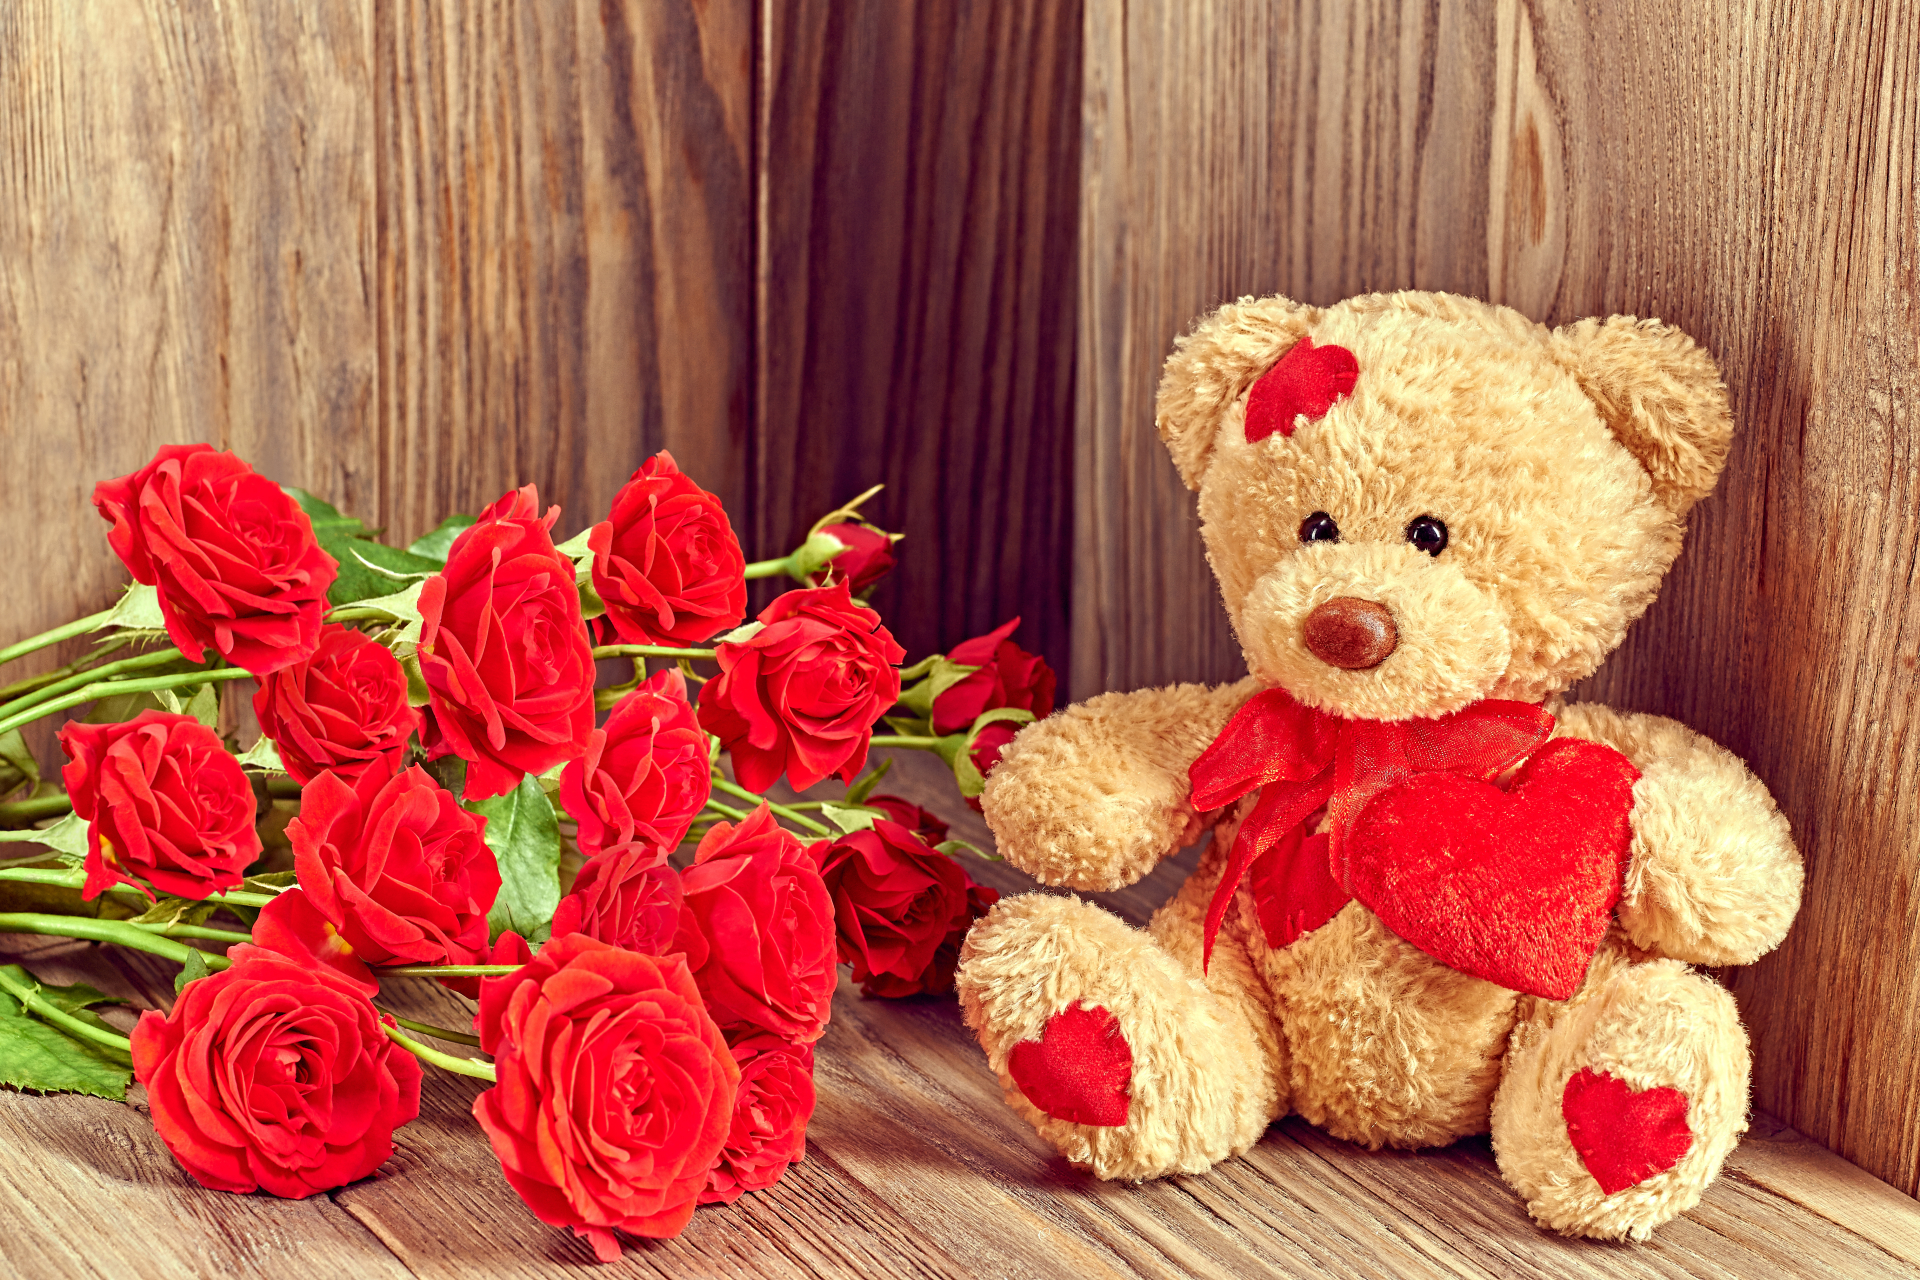 Romantic good morning images for girlfriend - good morning teddy bear images for girlfriend